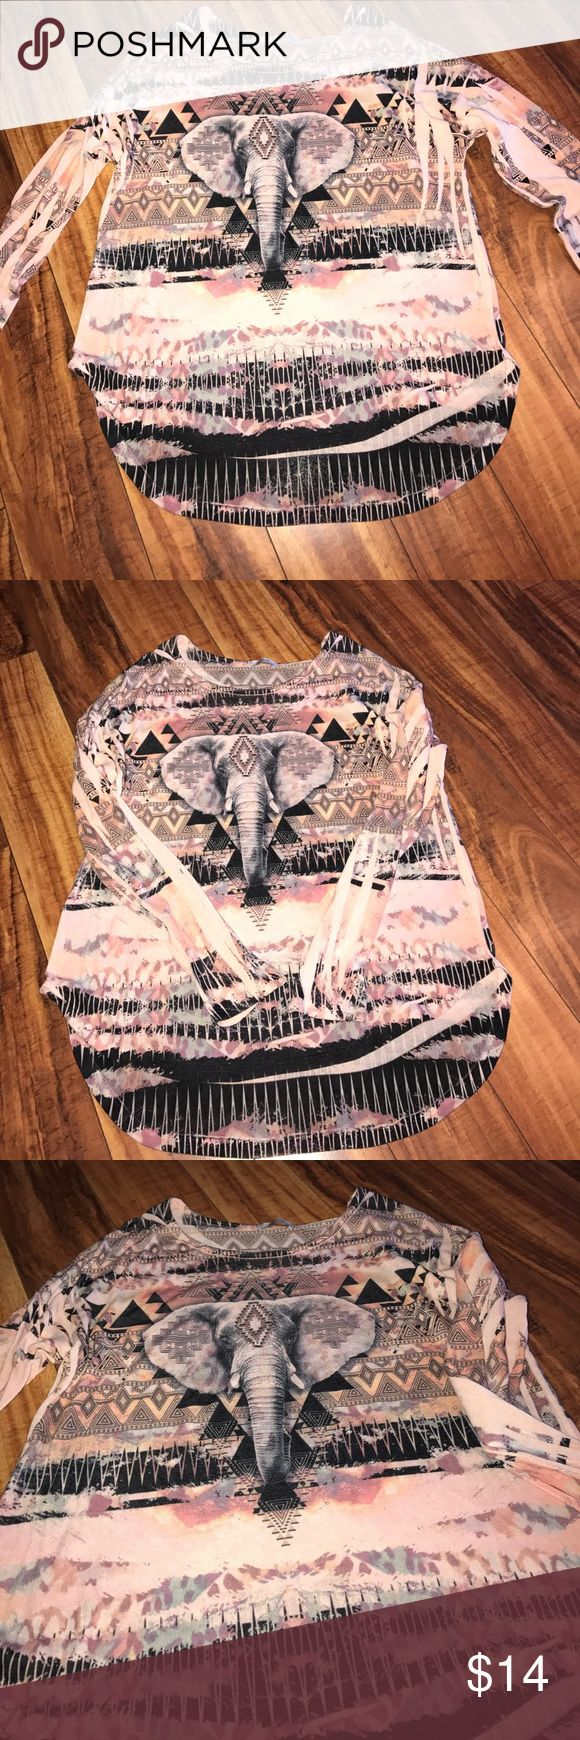 Boho elephant hi-lo long sleeve top In perfect condition, Beautiful colors almost a watercolor effect, hippy Aztec  elephant print. Size not listed on the tag but would say medium is very stretchy. teenbell Tops